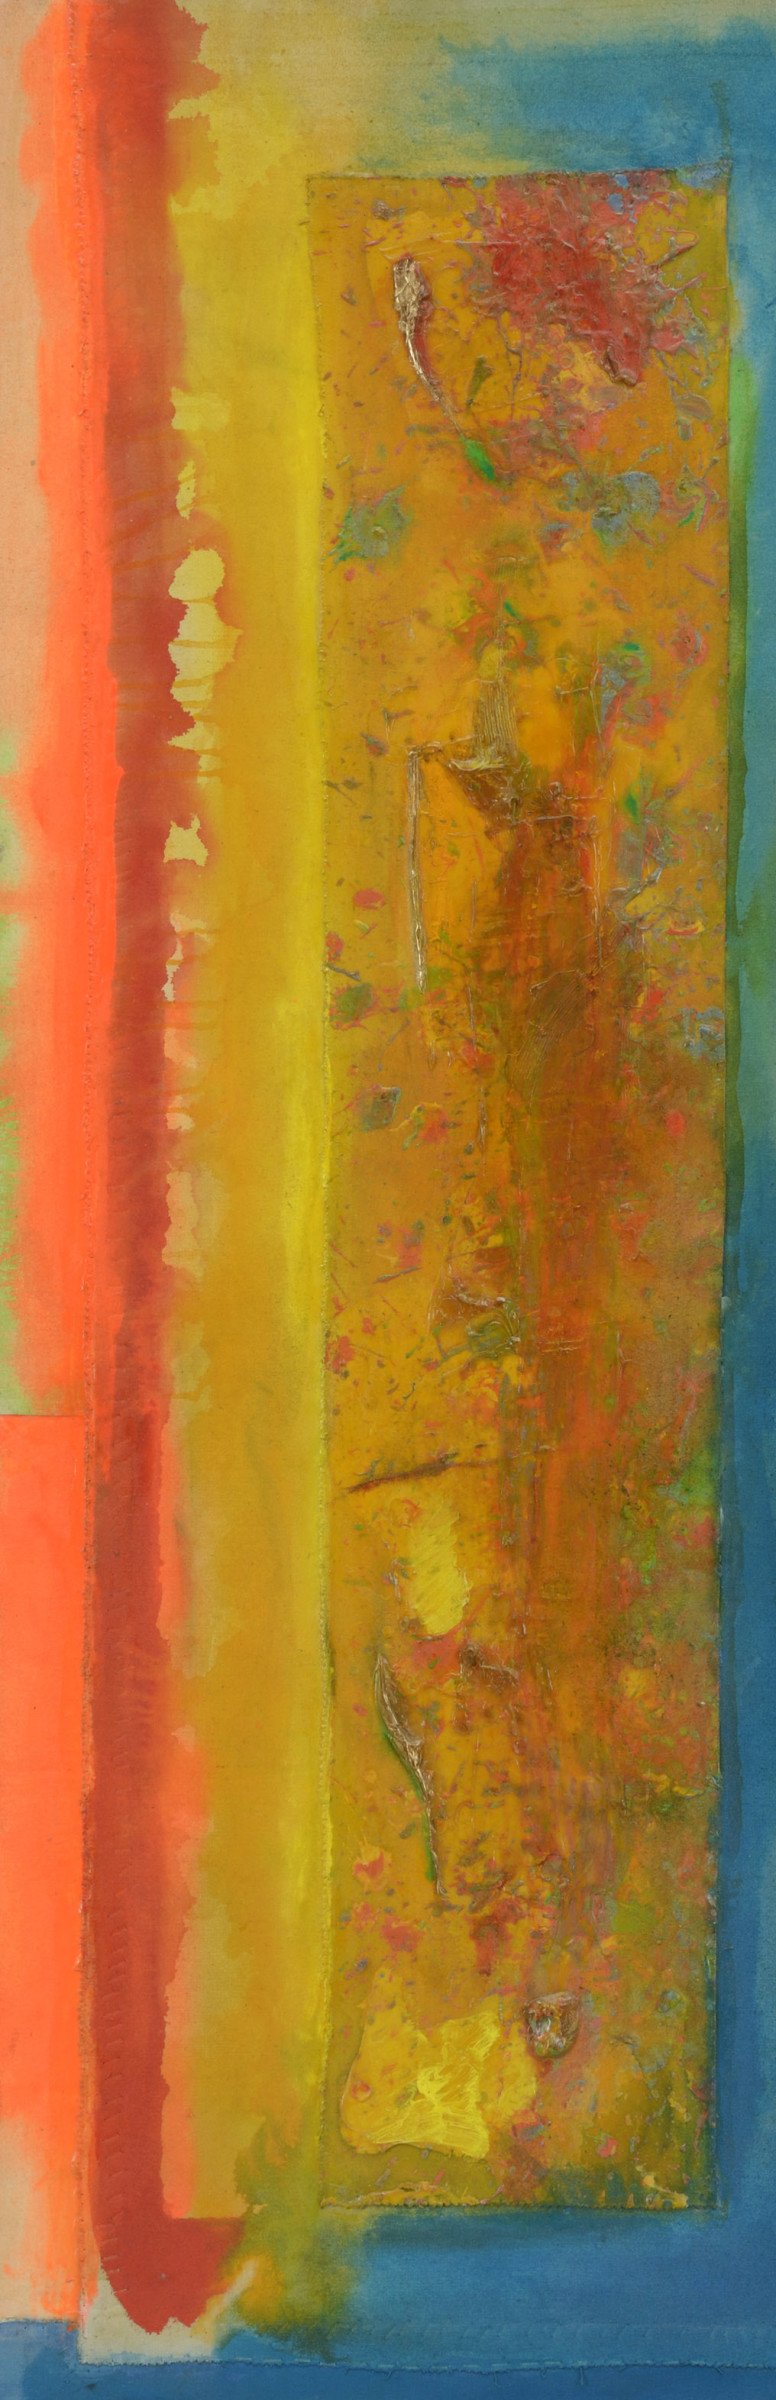 """<span class=""""link fancybox-details-link""""><a href=""""/artists/70-frank-bowling/works/192/"""">View Detail Page</a></span><div class=""""artist""""><strong>Frank Bowling</strong></div> Born 1934 <div class=""""title""""><em>P.D's Choice</em></div> <div class=""""signed_and_dated"""">signed, titled and dated 1990 verso</div> <div class=""""medium"""">acrylic and mixed media on collaged canvas</div> <div class=""""dimensions"""">147 x 45.5 cms (58 x 18 ins)<br /> framed: 155.5 x 60.5 cms (61¼ x 23¾ ins)</div>"""